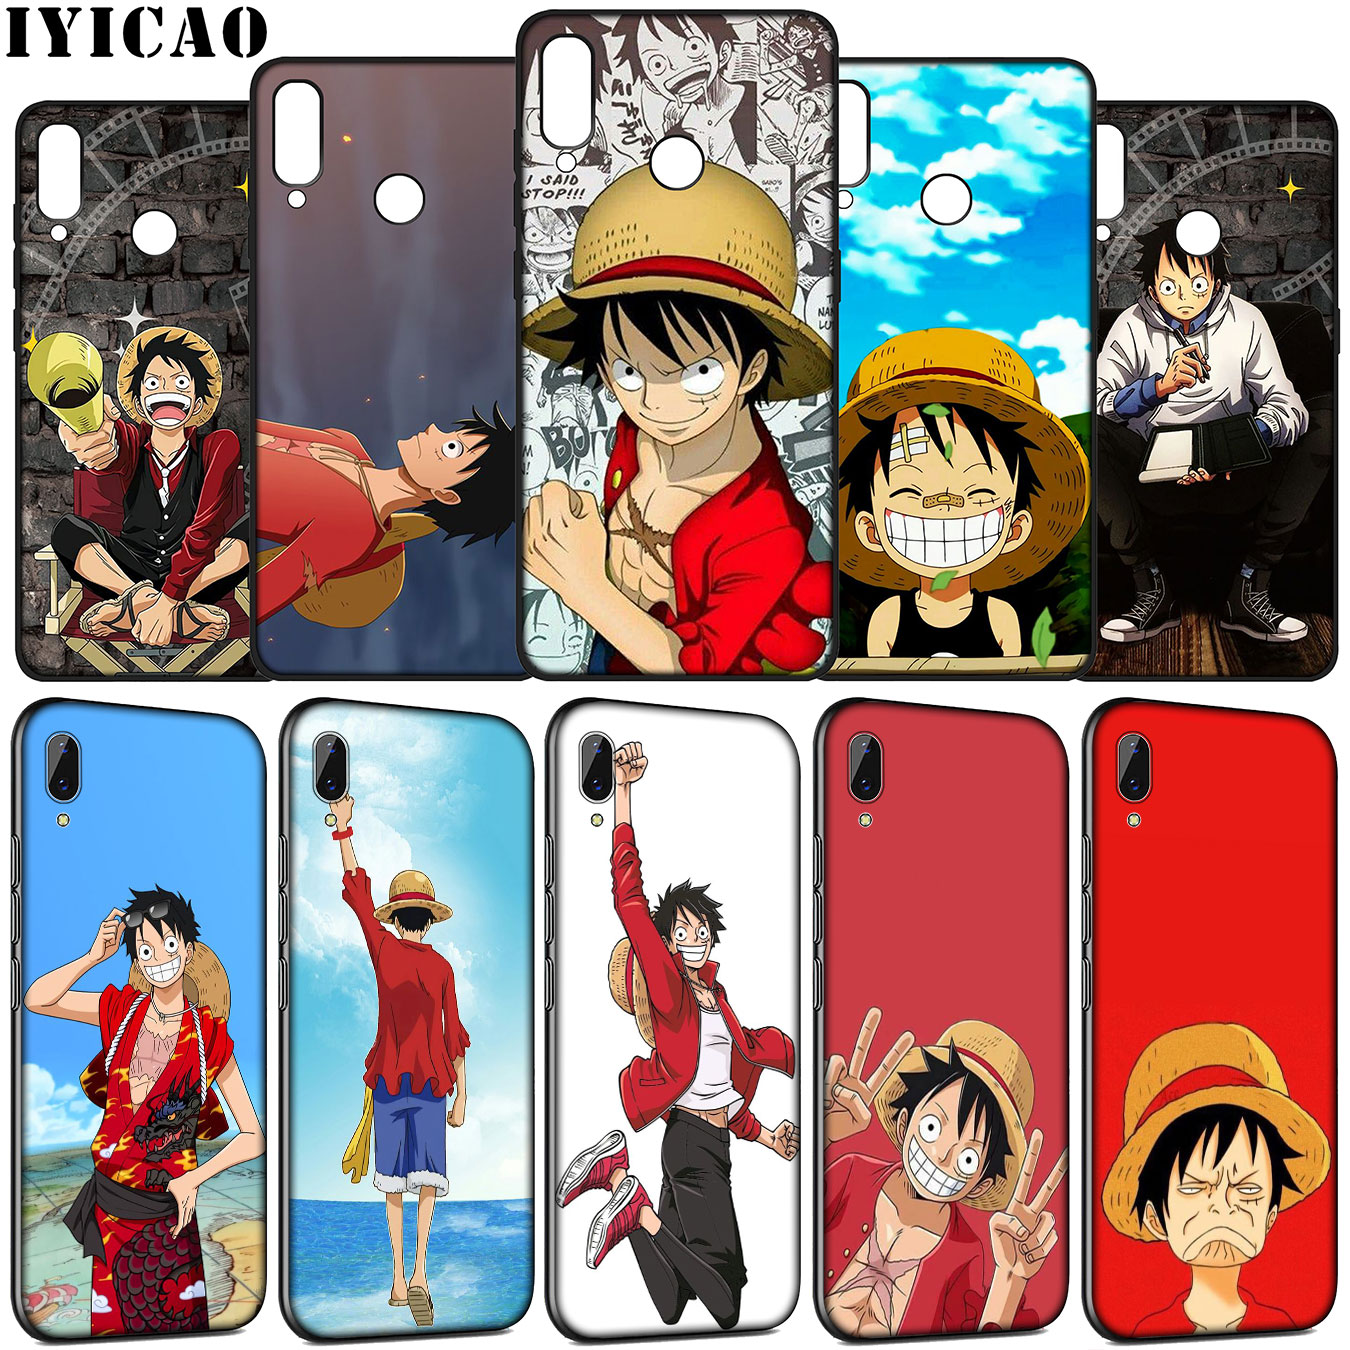 IYICAO <font><b>one</b></font> <font><b>piece</b></font> luffy Soft Silicone Case for Huawei Y9 Y7 Y6 Prime <font><b>2019</b></font> <font><b>Honor</b></font> <font><b>view</b></font> 20 8C 8X 8 9 9X <font><b>10</b></font> <font><b>Lite</b></font> 7C 7X 7A Pro <font><b>Cover</b></font> image